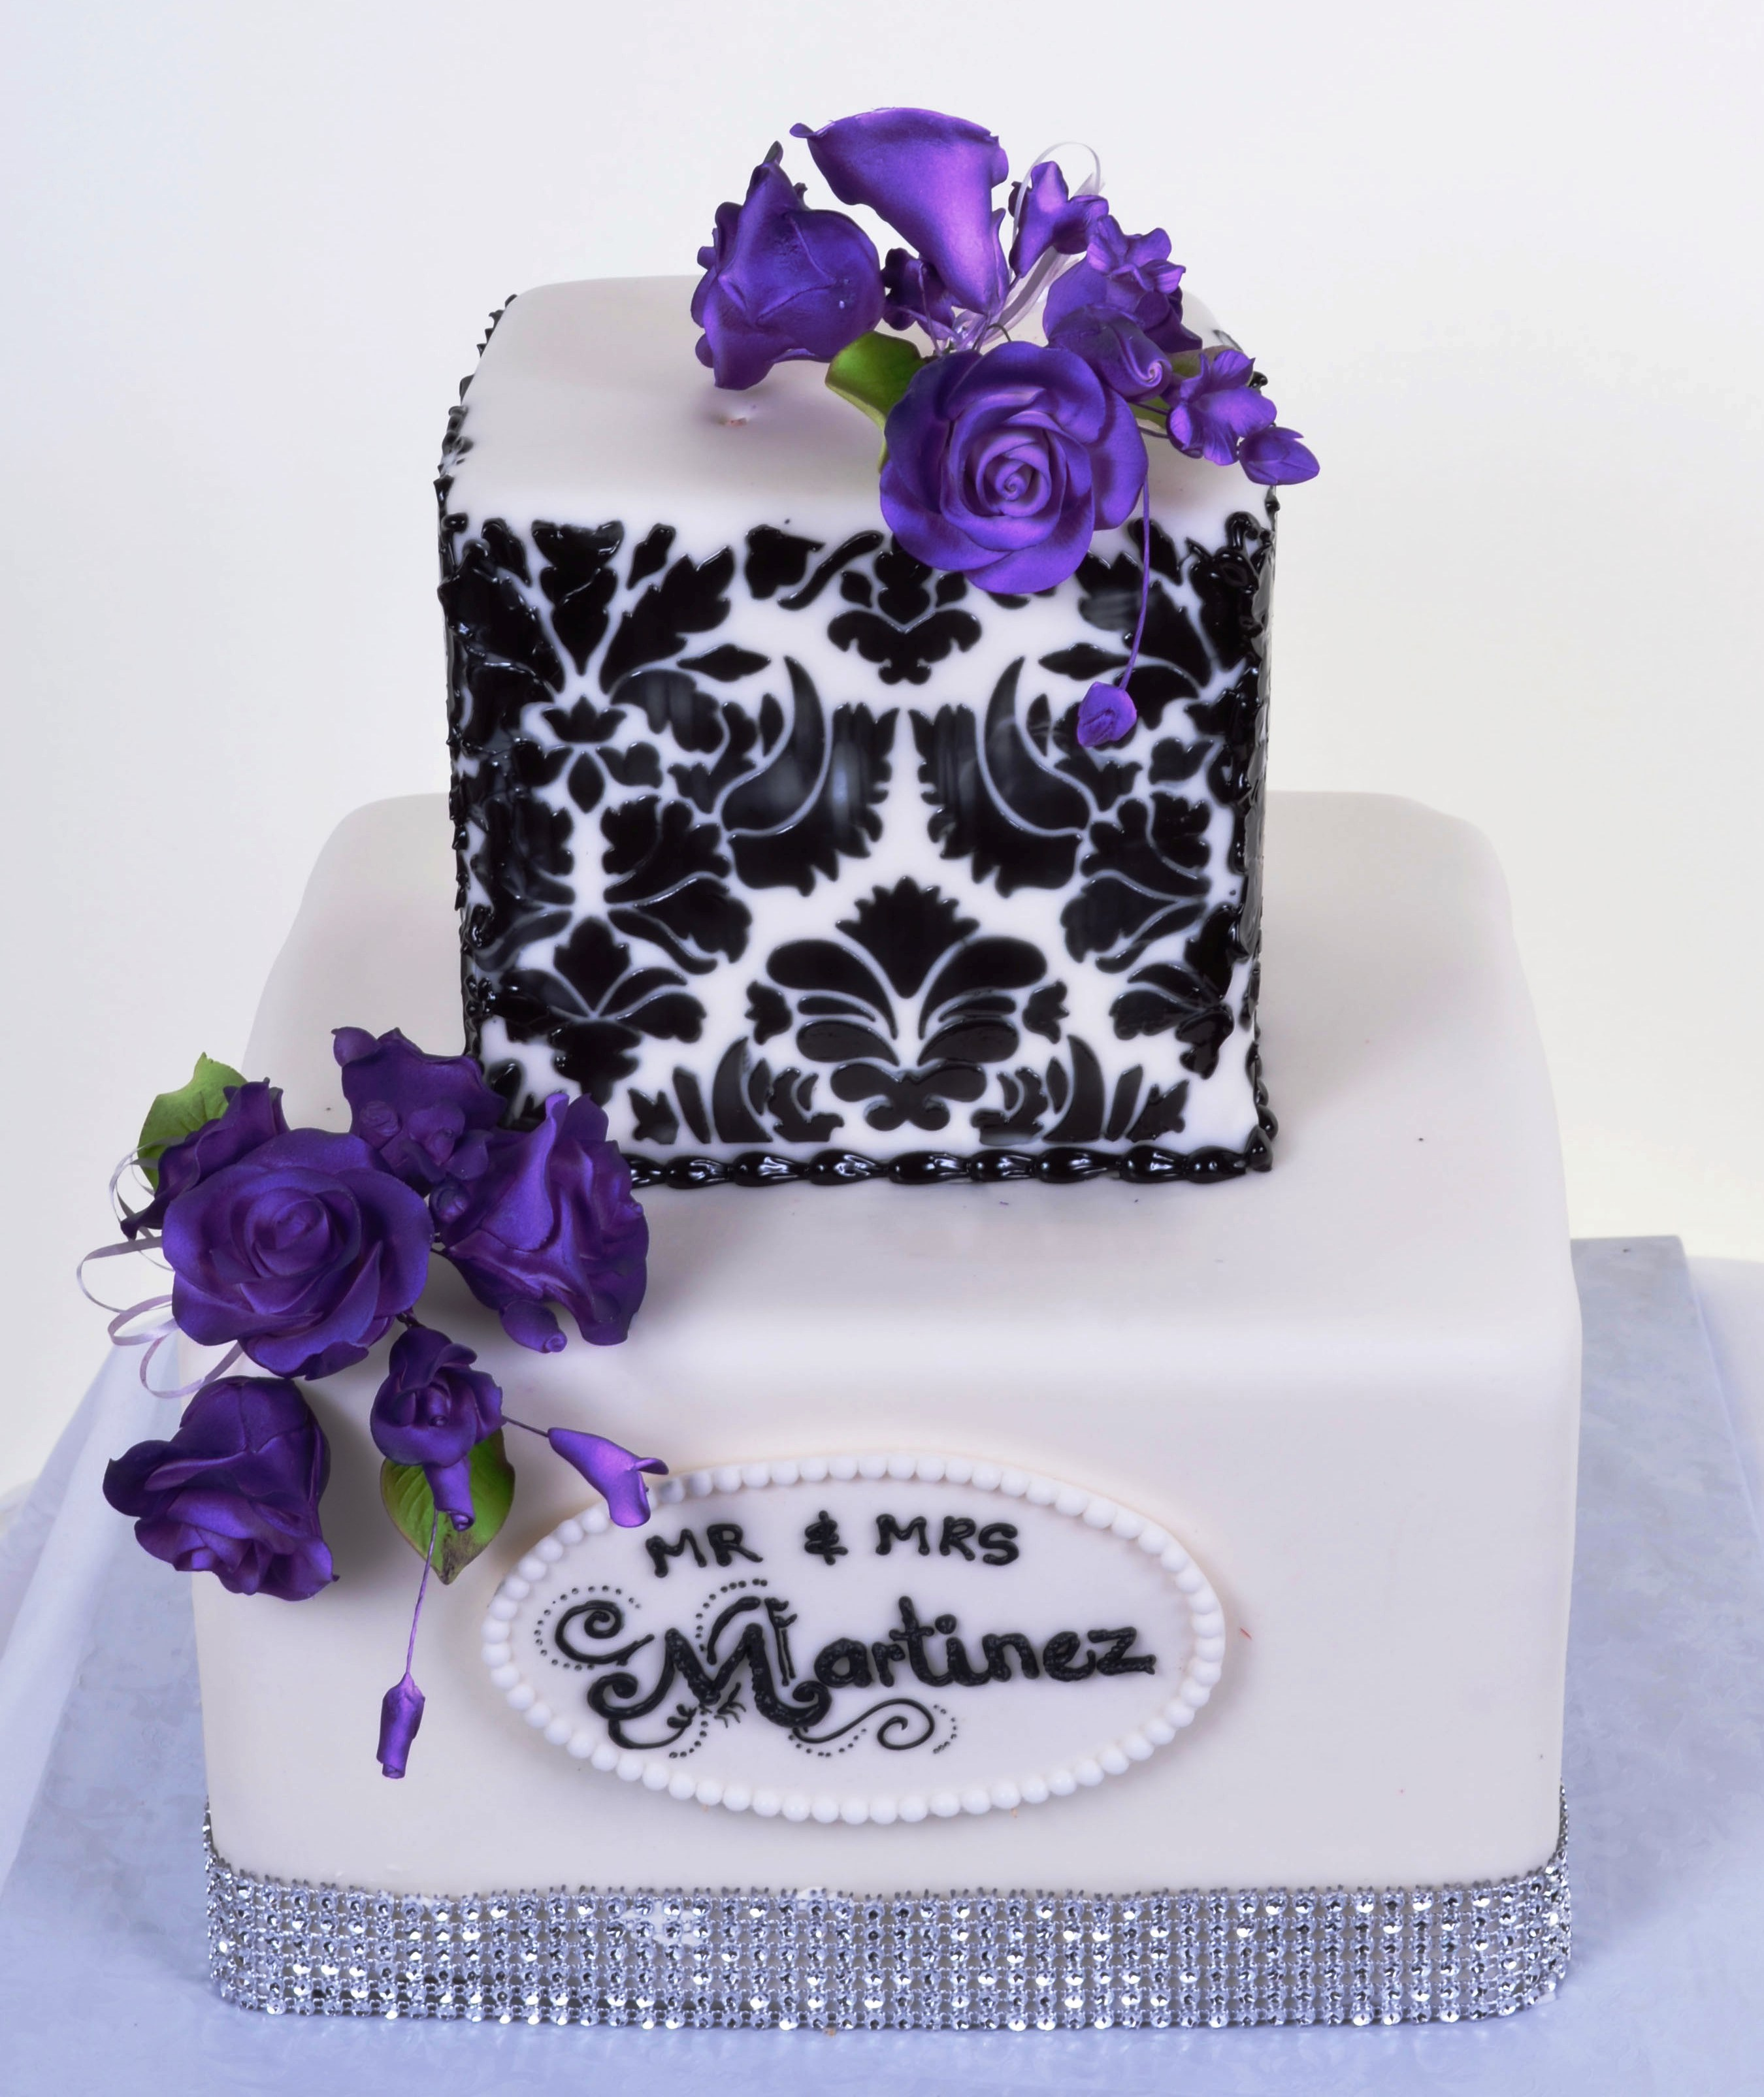 Pastry Palace Las Vegas - Black and White Damask with Purple